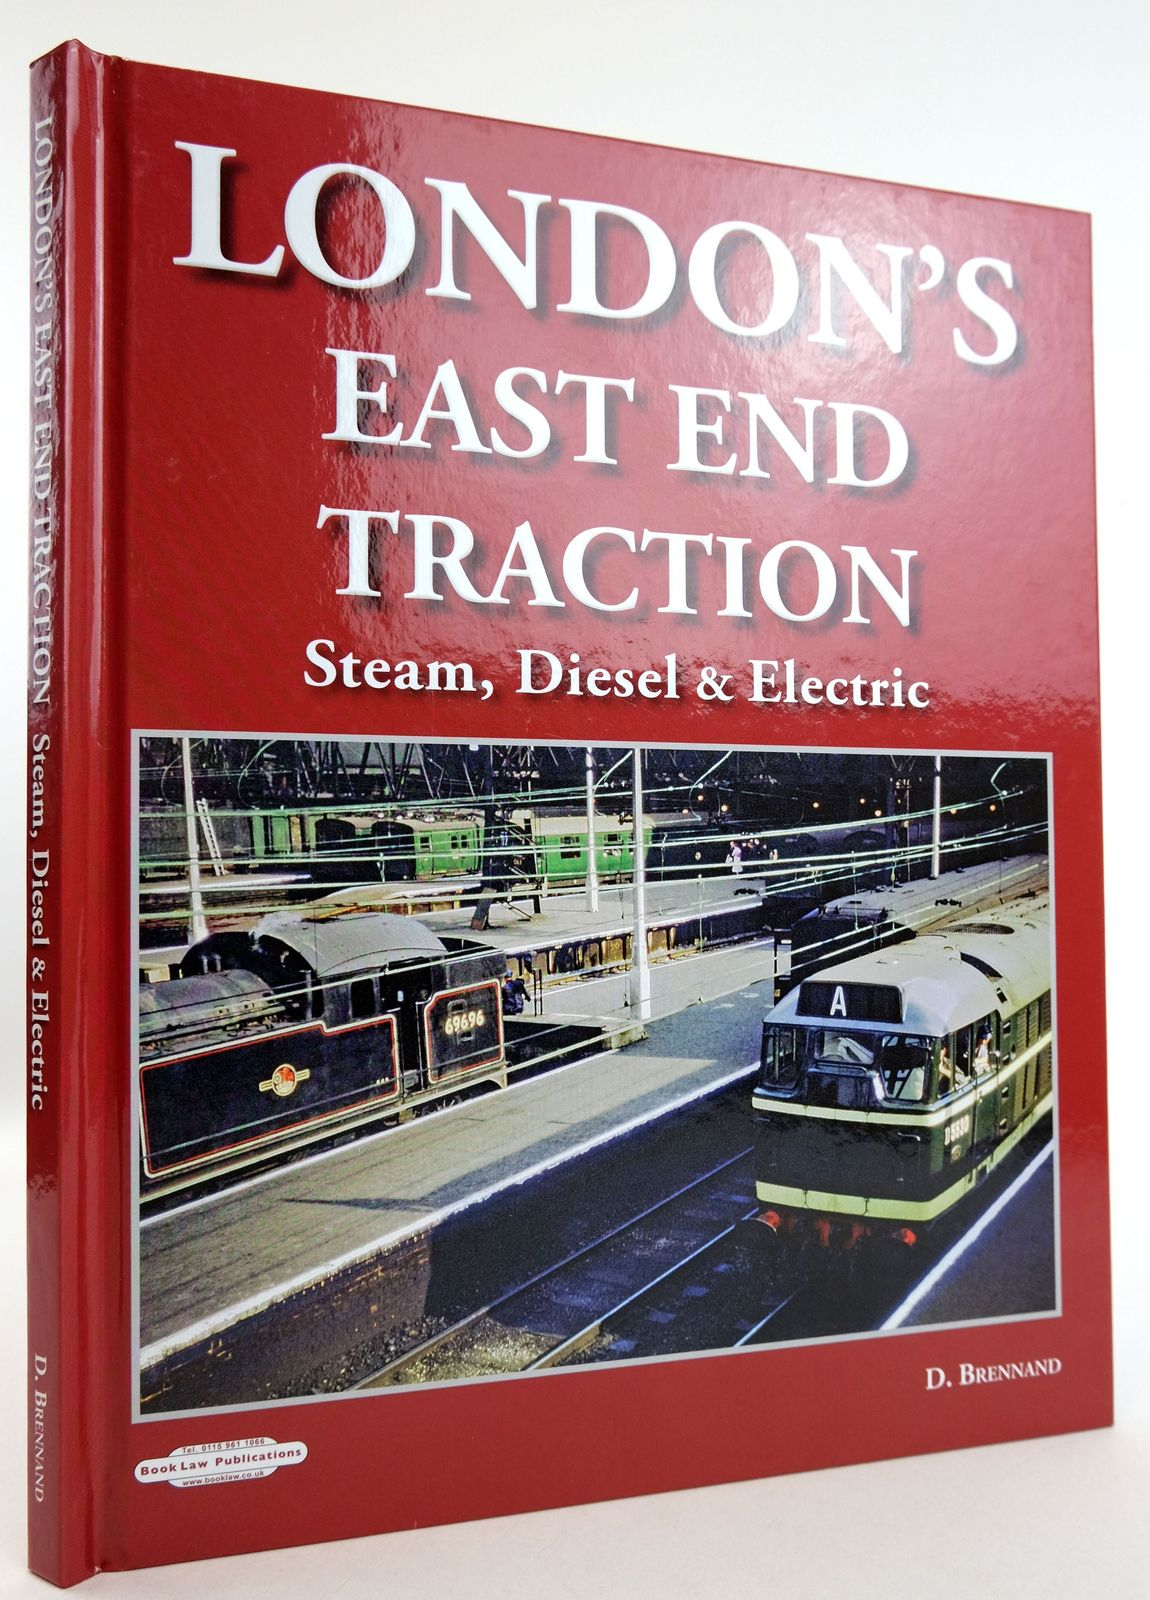 Photo of LONDON'S EAST END TRACTION: STEAM, DIESEL & ELECTRIC written by Brennand, D. published by Book Law Publications (STOCK CODE: 1819164)  for sale by Stella & Rose's Books